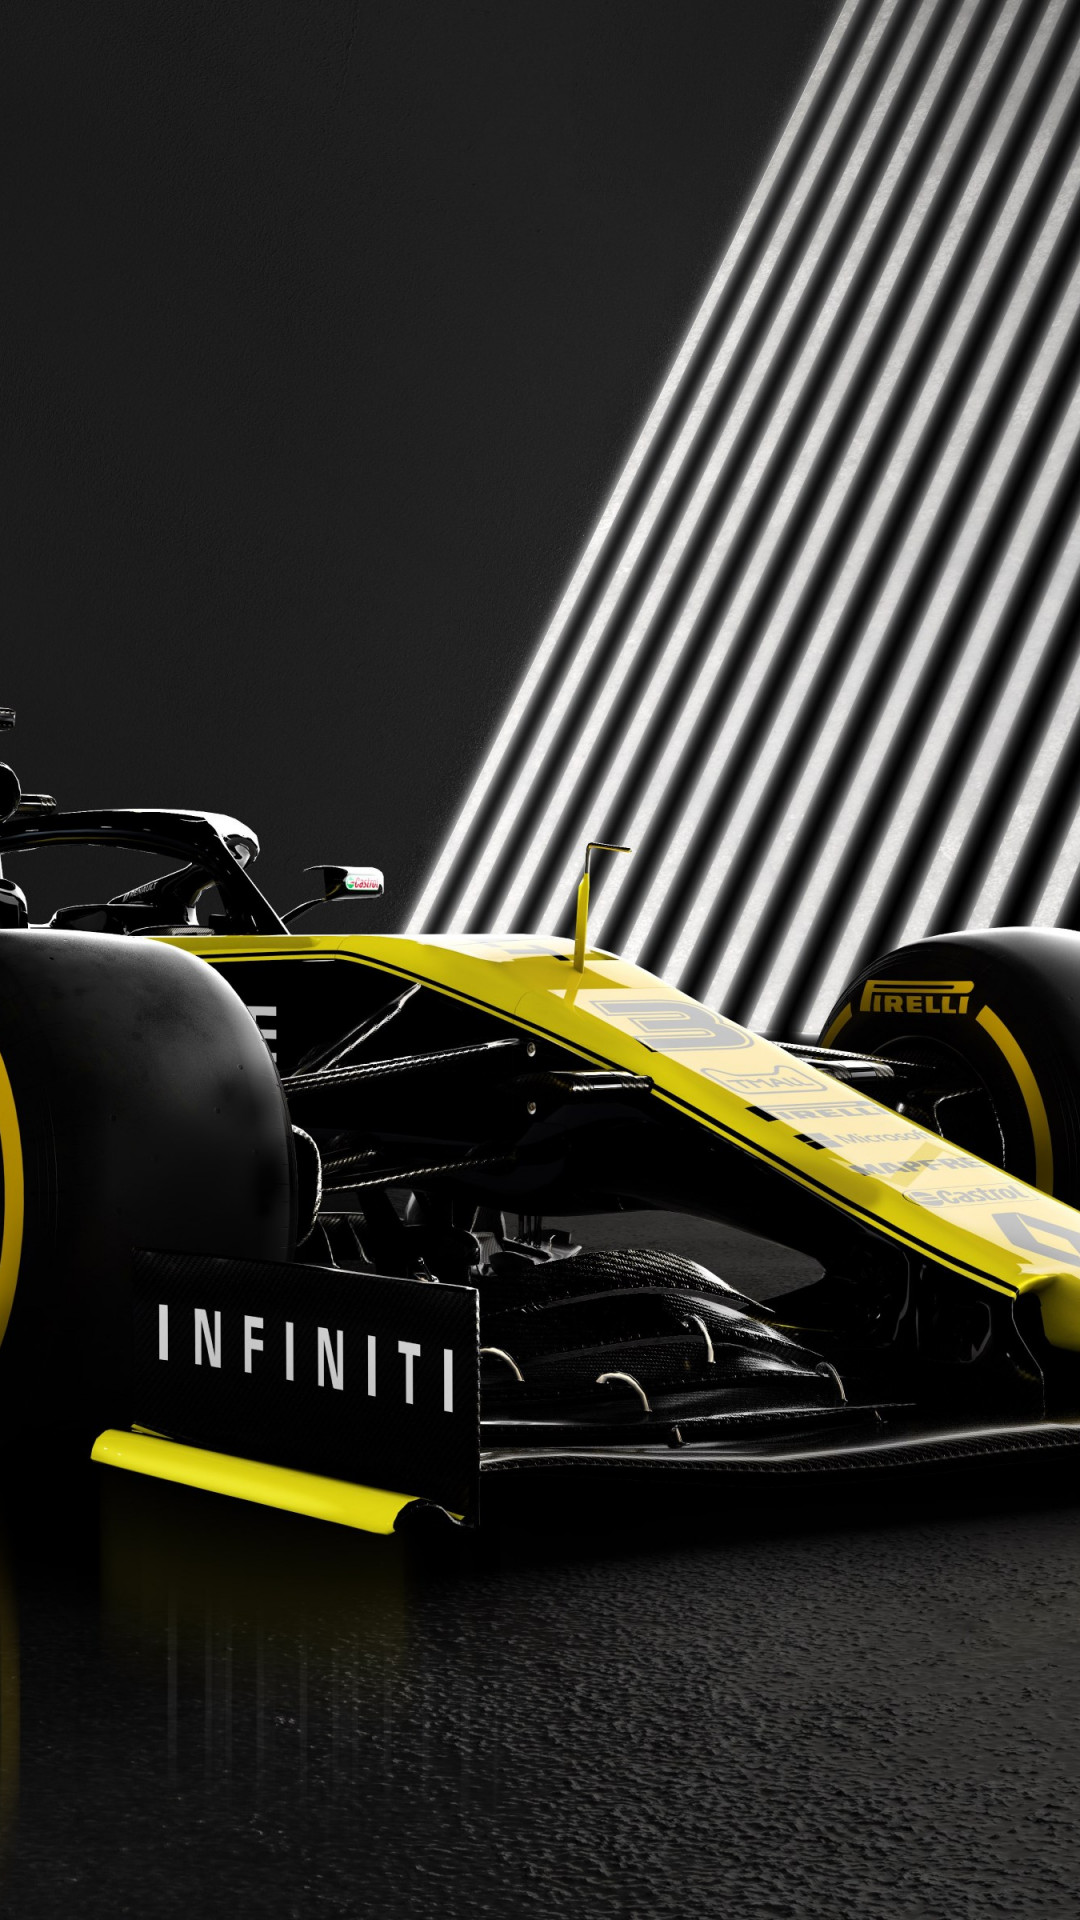 Download wallpaper Renault F1 RS19 1080x1920 1080x1920